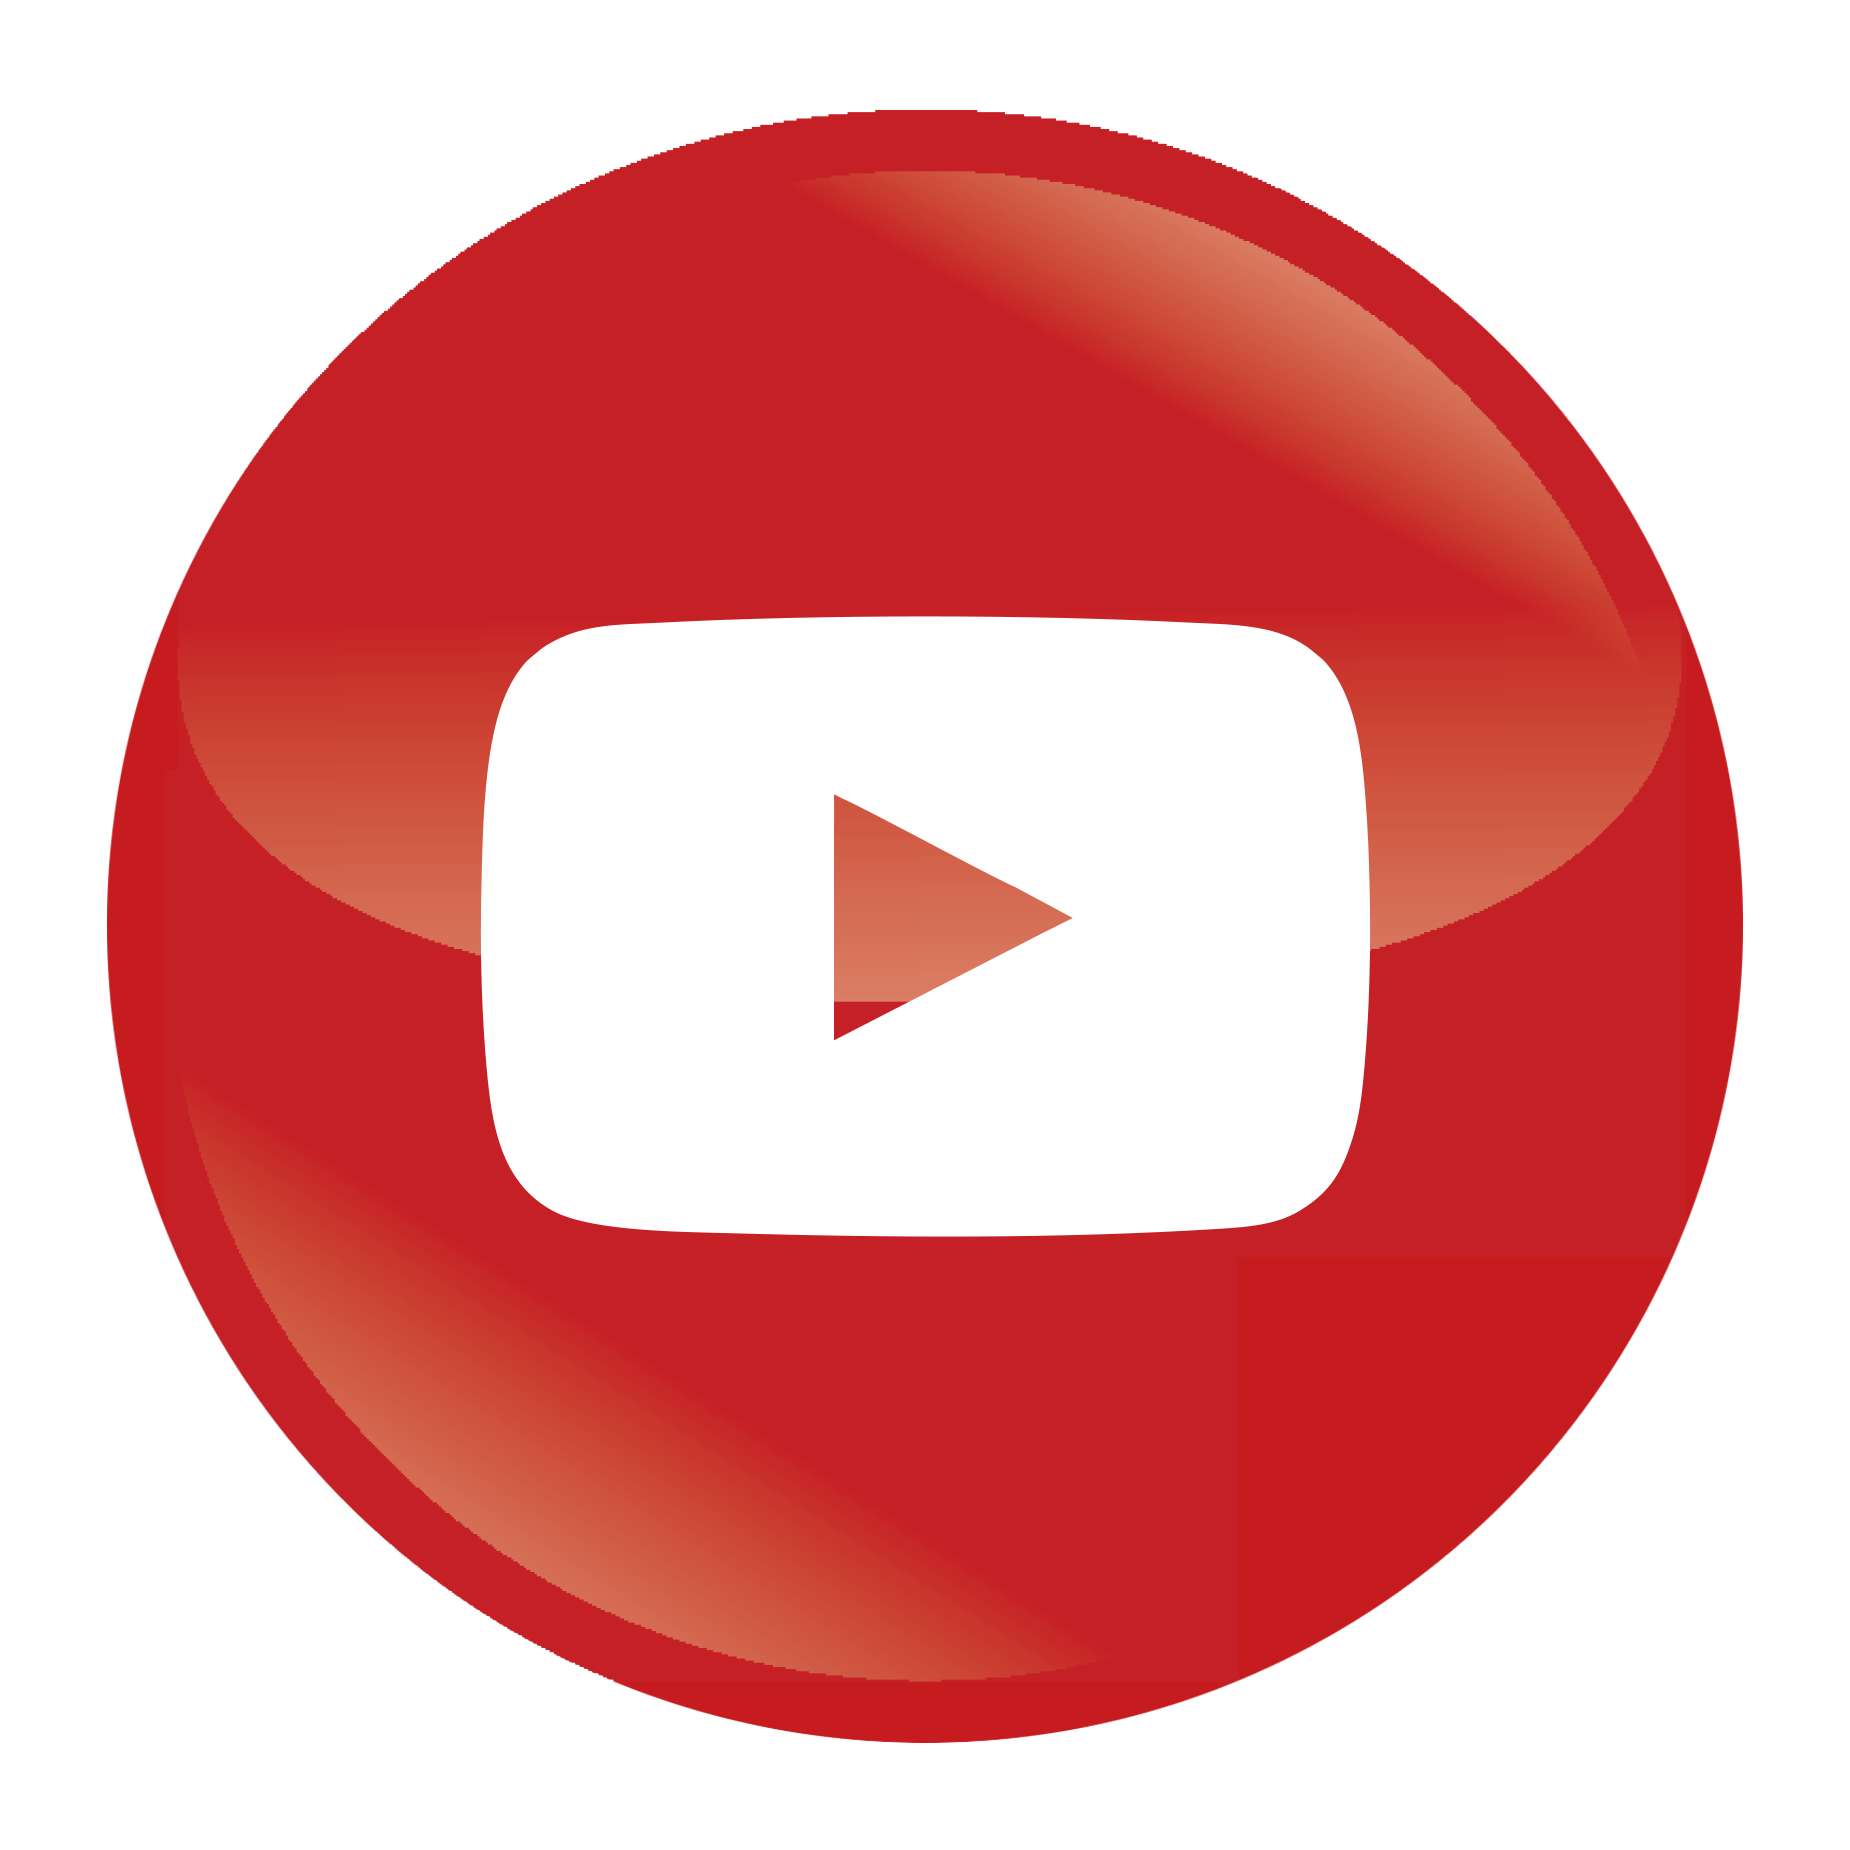 YouTube-circular-icon-PNG